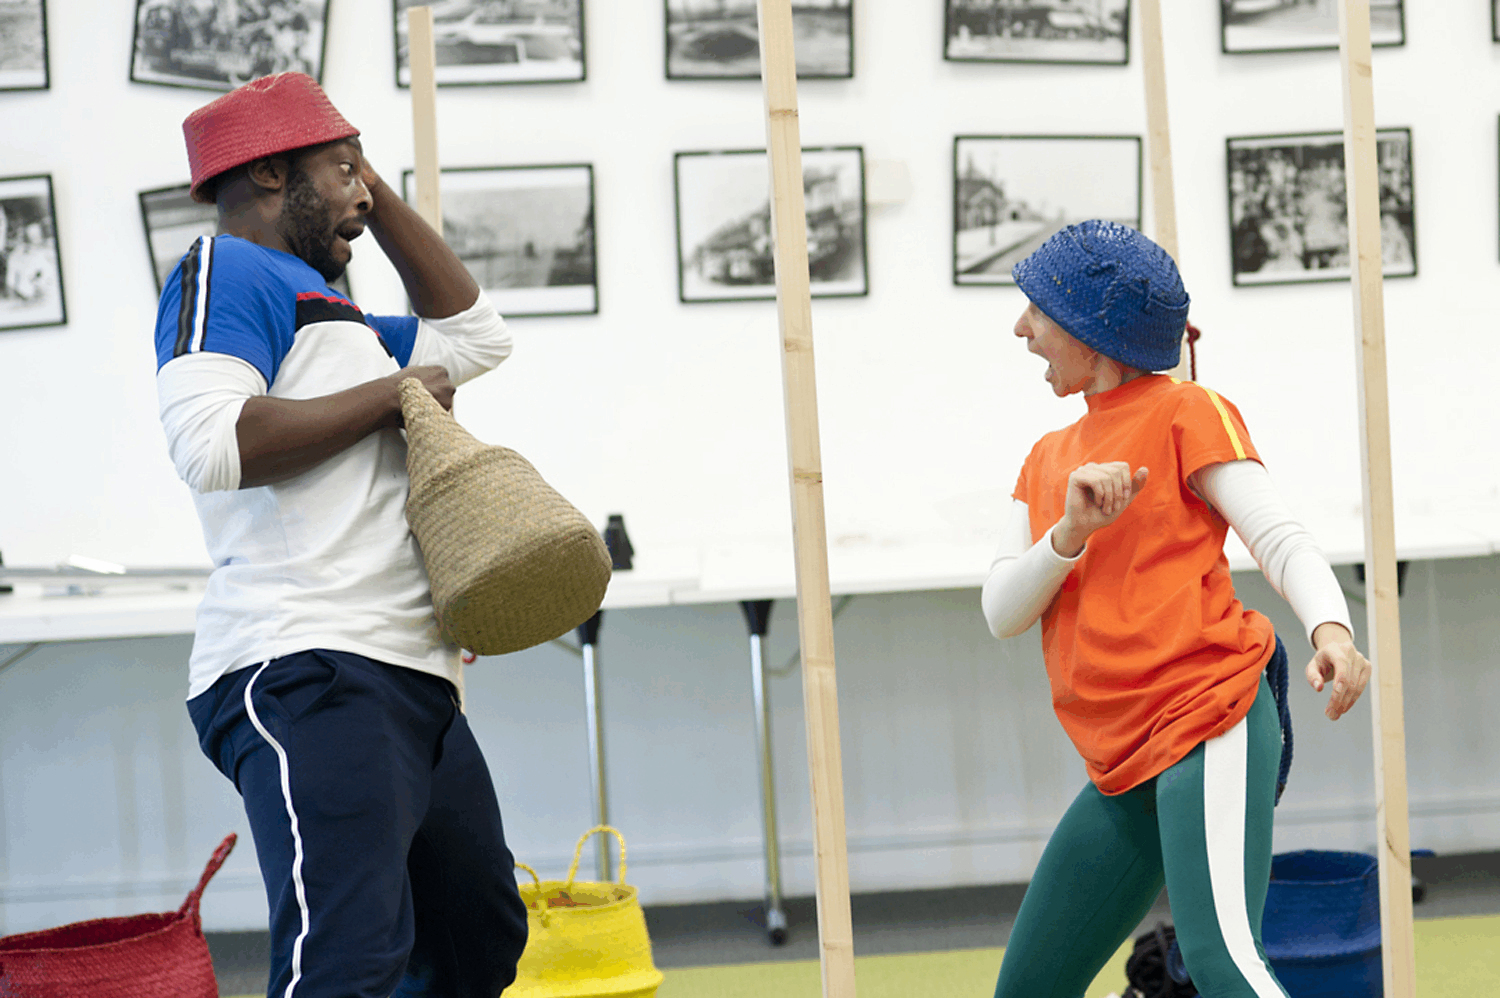 one male performer with a red hat and basket being little red riding hood meets one female performer wearing a blue hat with ears who is being a wolf.  They are tilting backwards